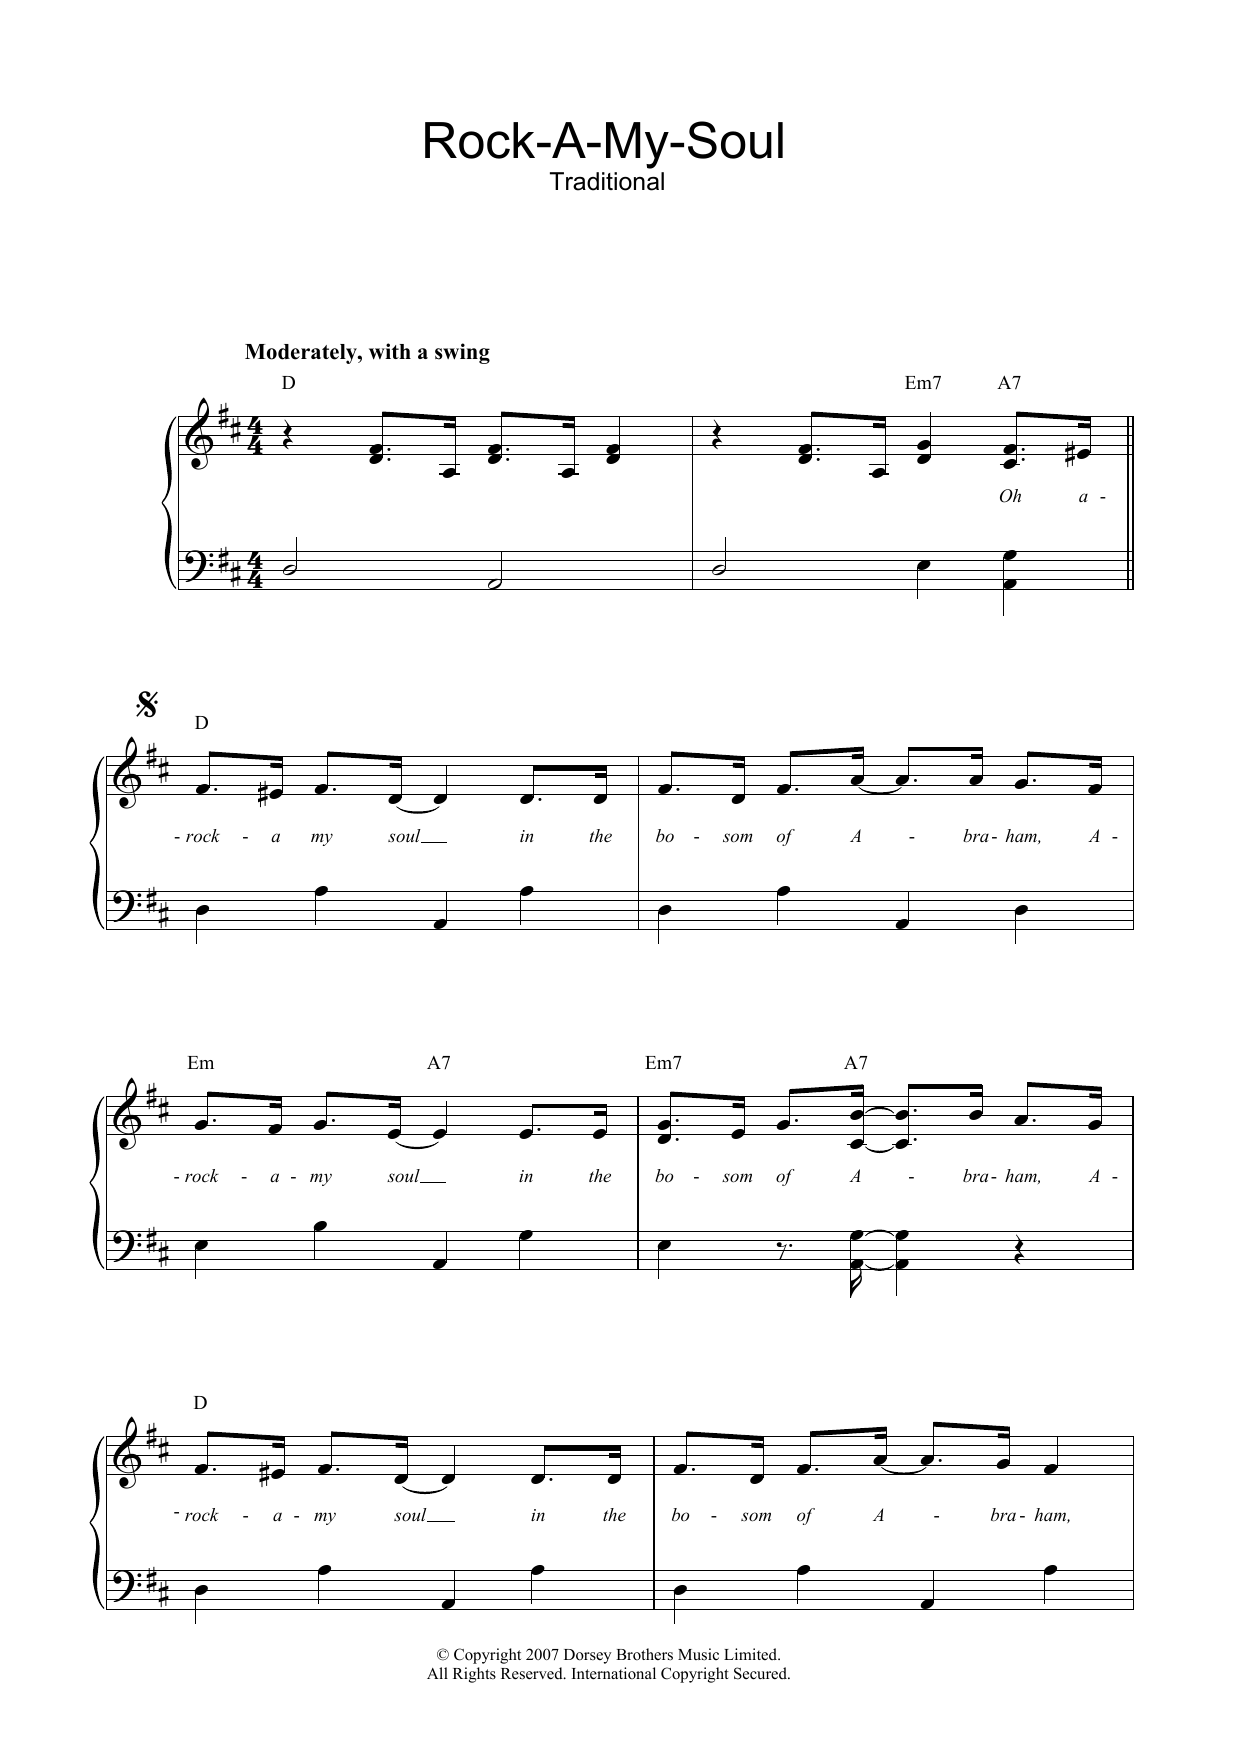 Rock-A-My-Soul Sheet Music